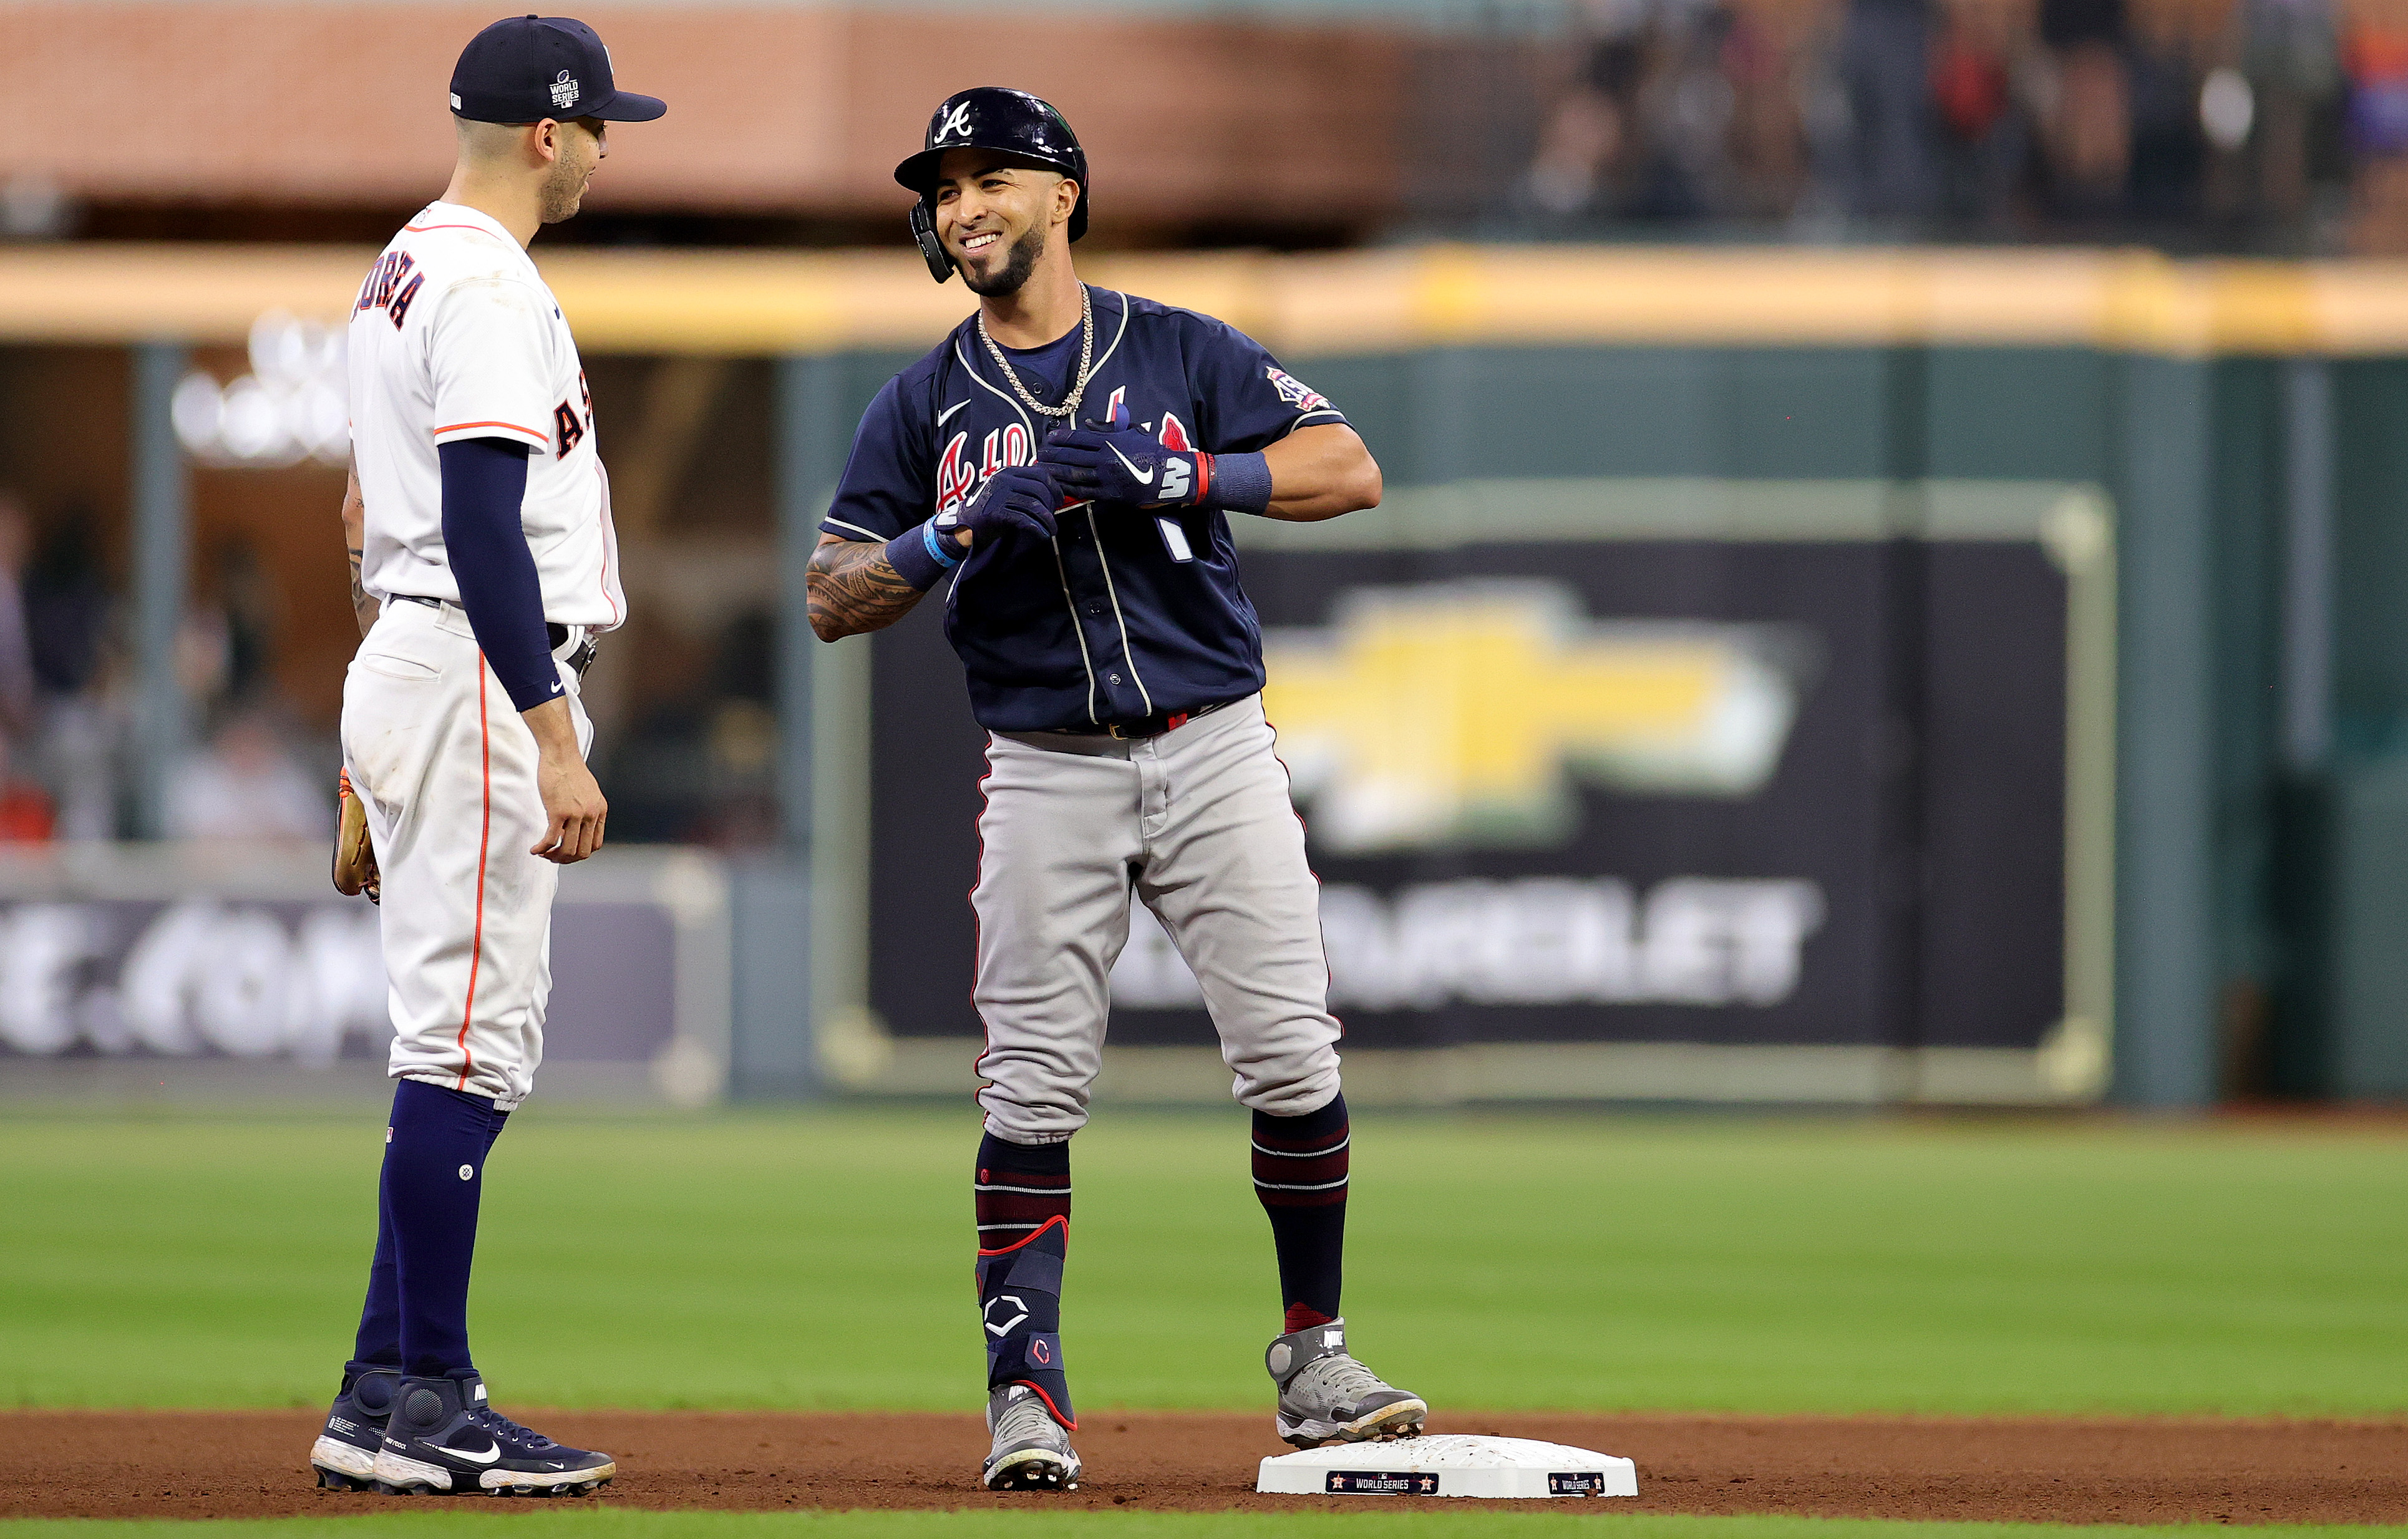 Eddie Rosario #8 of the Atlanta Braves hits a double against the Houston Astros during the seventh inning in Game One of the World Series at Minute Maid Park on October 26, 2021 in Houston, Texas.